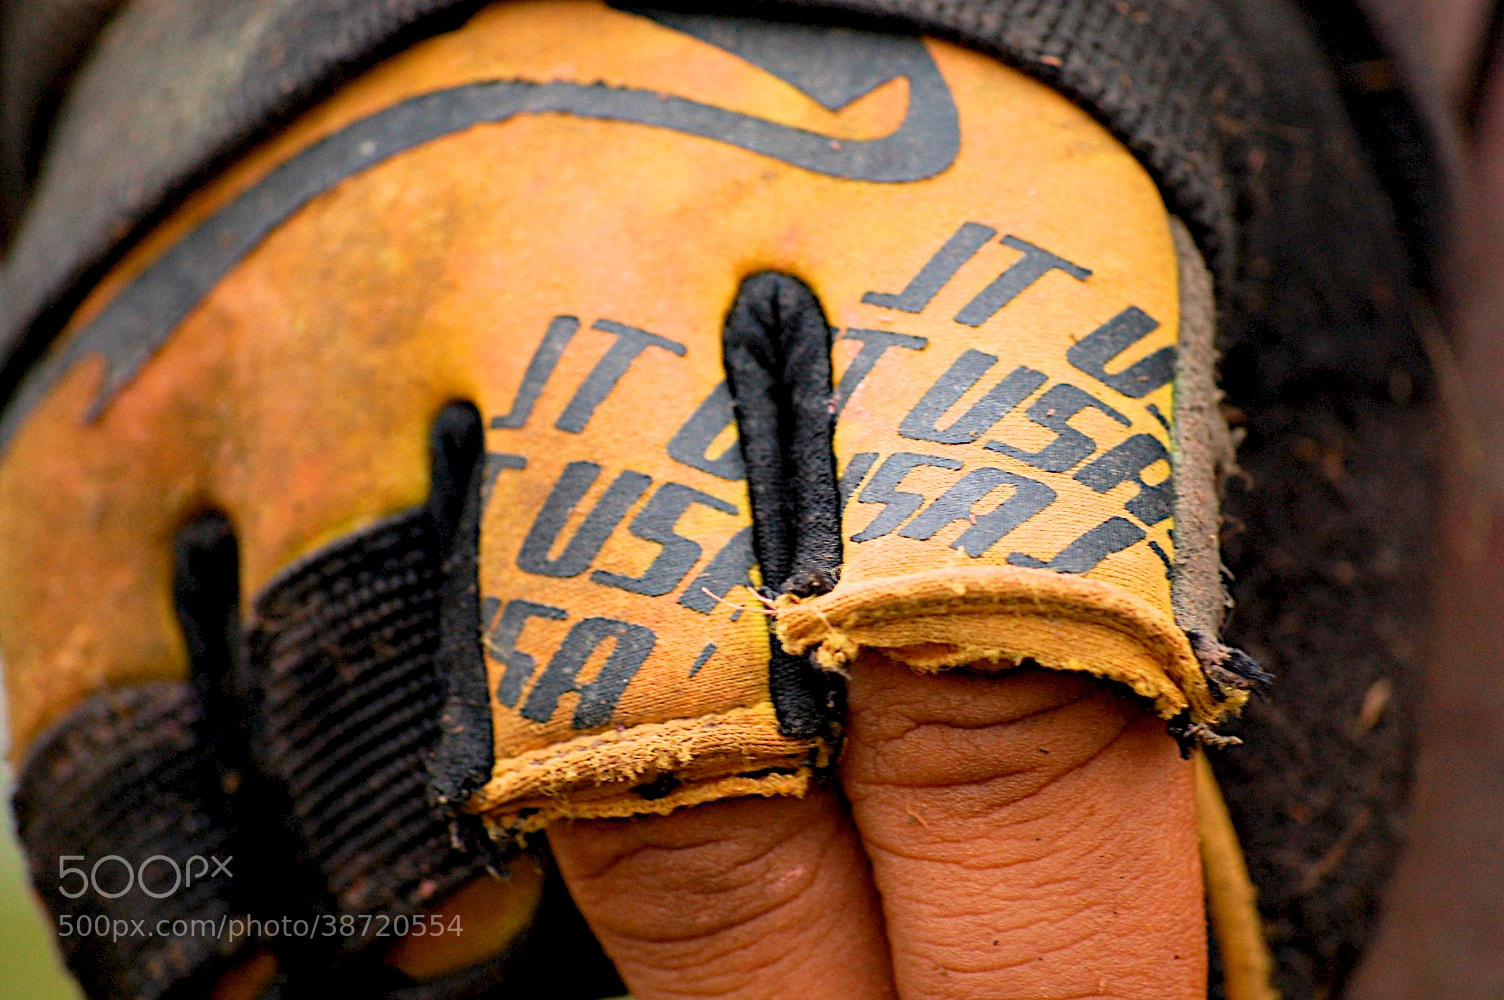 Photograph Paintball Glove by Jarkko Tervonen on 500px